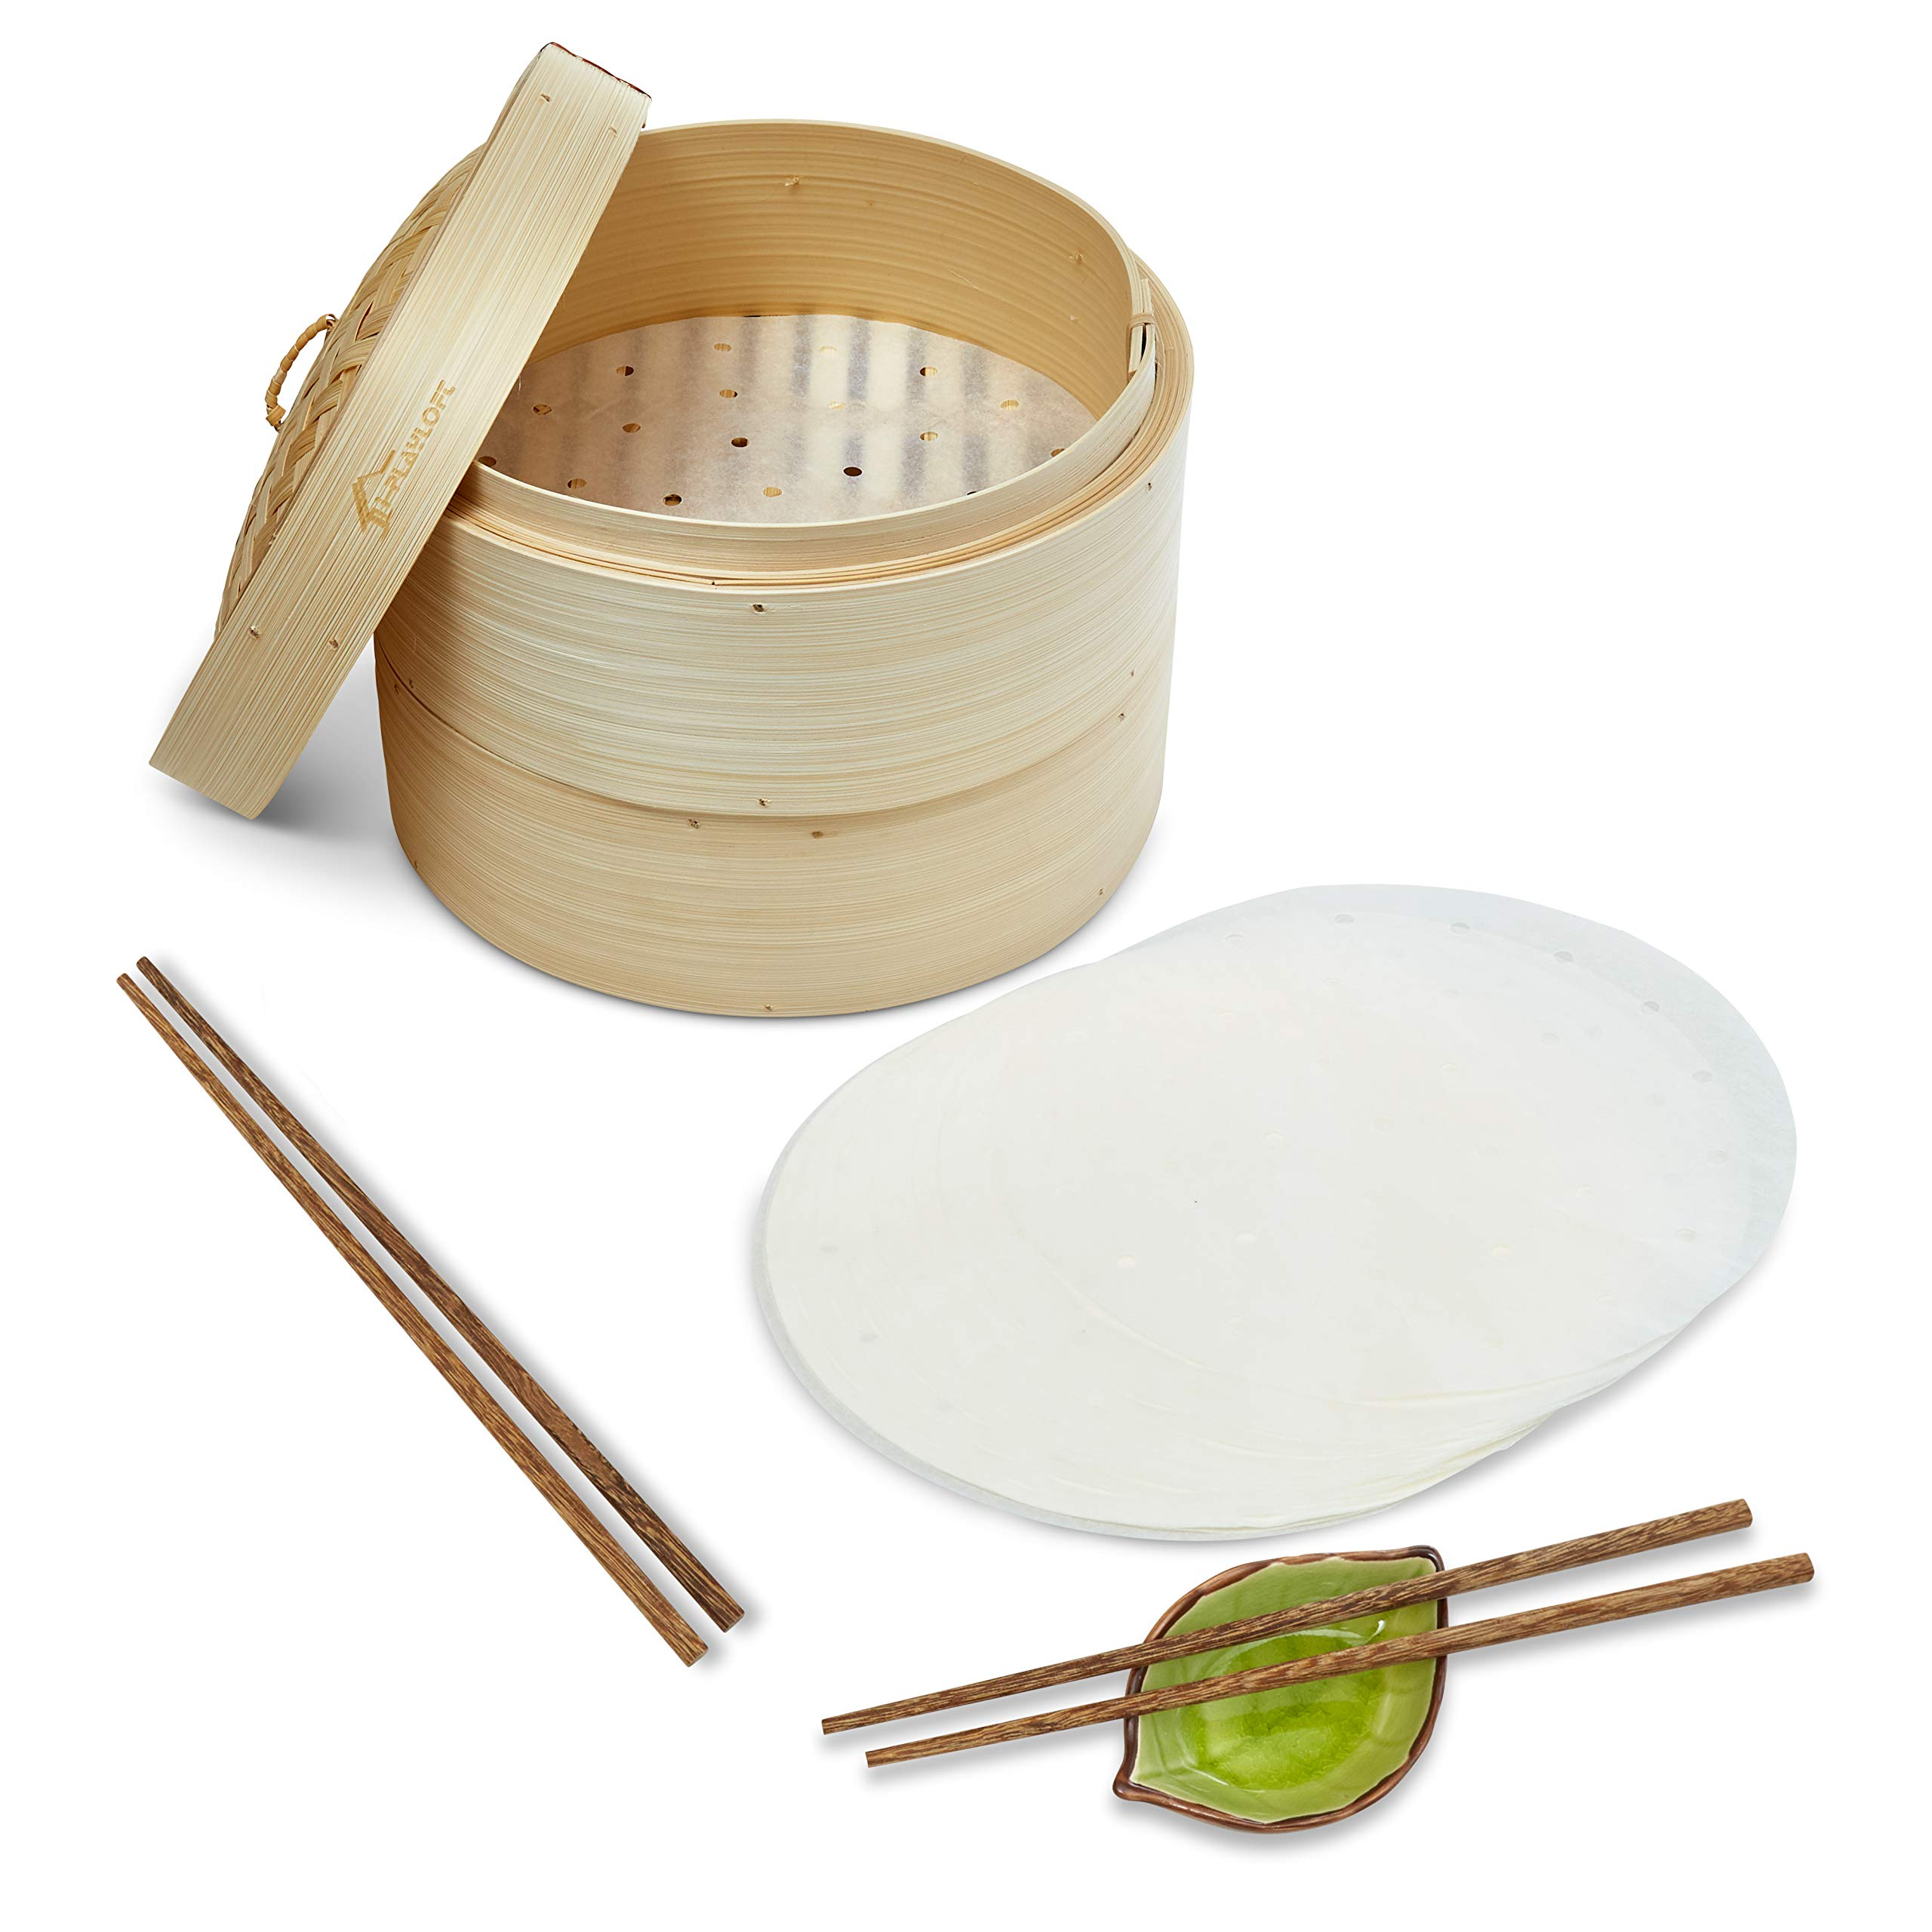 Premium 10 Inch Handmade Bamboo Steamer - Two Tier EXTRA DEPTH Baskets - Dim Sum Dumpling & Bao Bun Chinese Food Steamers - Steam Baskets For Rice, Vegetables, Meat & Fish Included 2 Sets Chopsticks, 20 Liners & Sauce Dish by i-PLAYLOFT